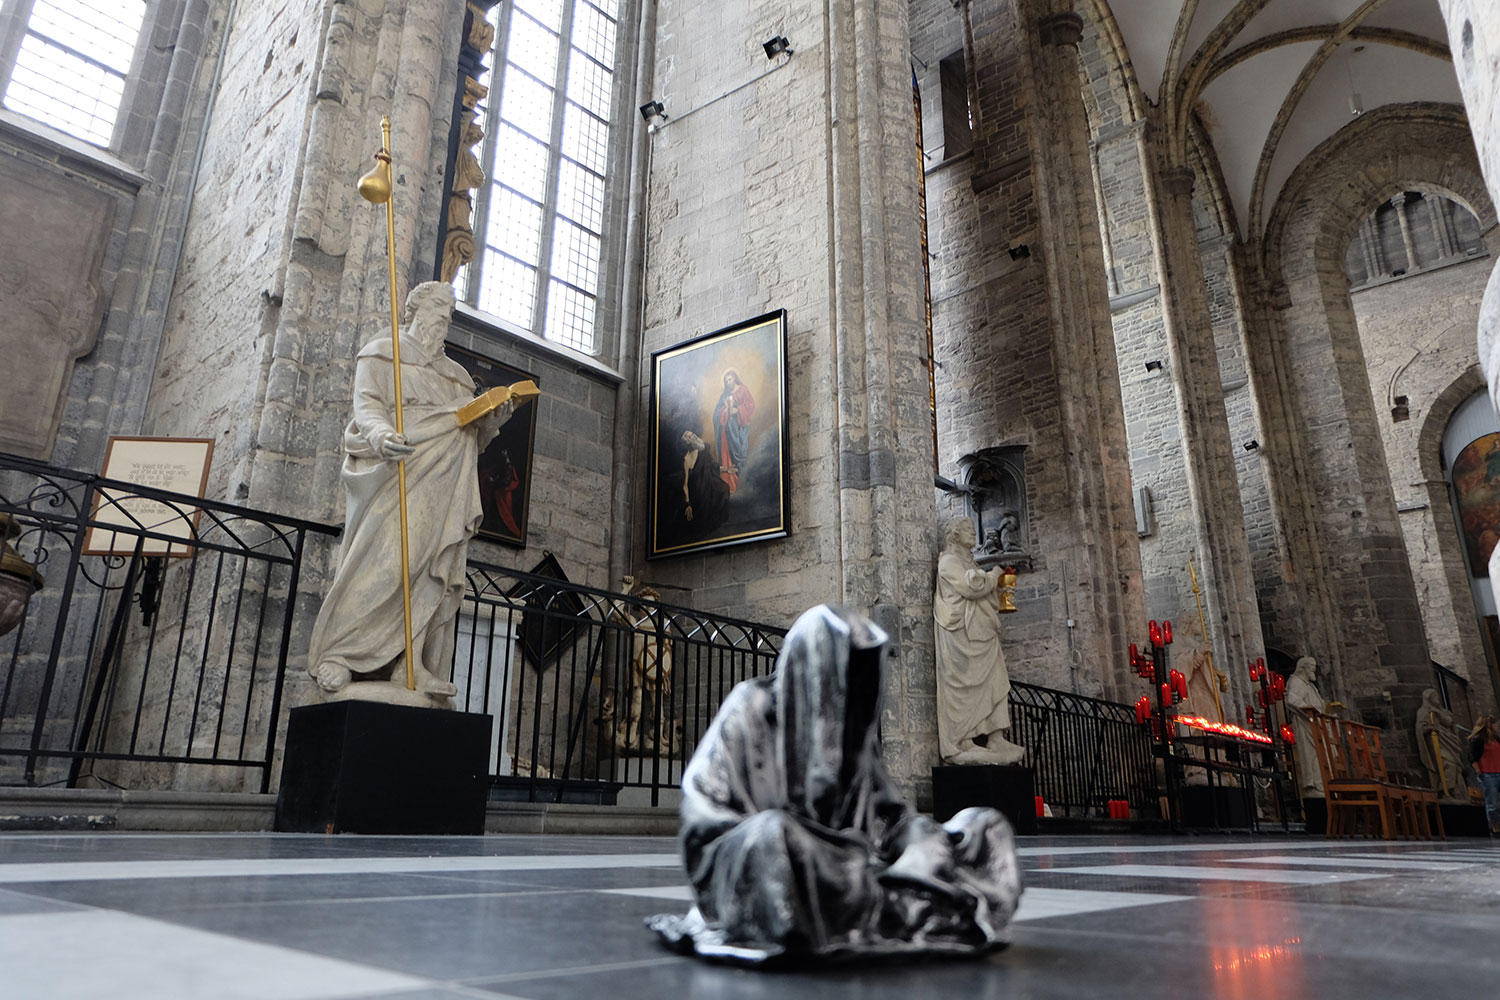 guardians-of-time-manfred-kili-kielnhofer-gent-belgium-contemporary-art-arts-design-sculpture-5206